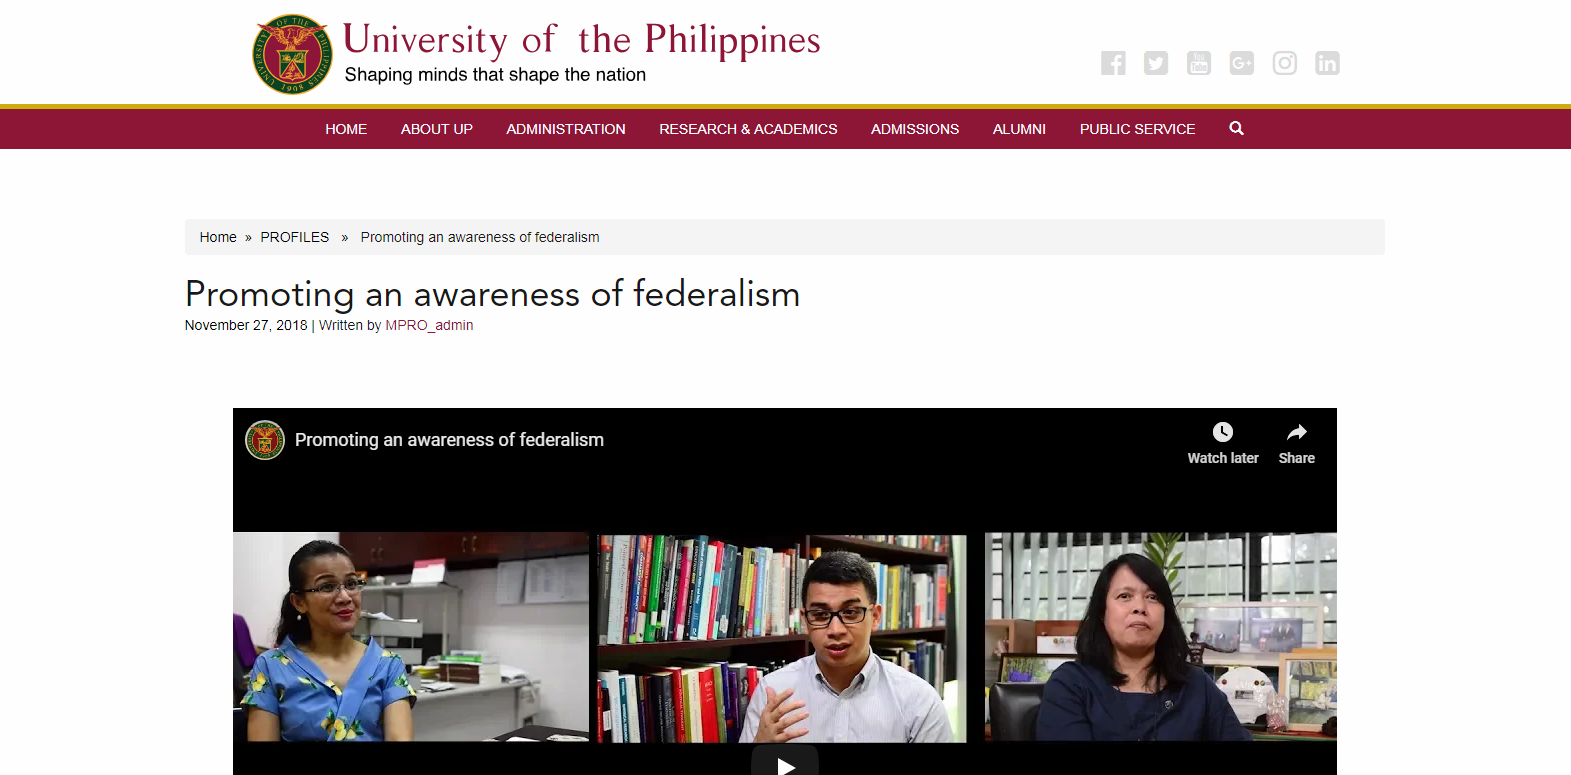 Promoting an awareness of federalism